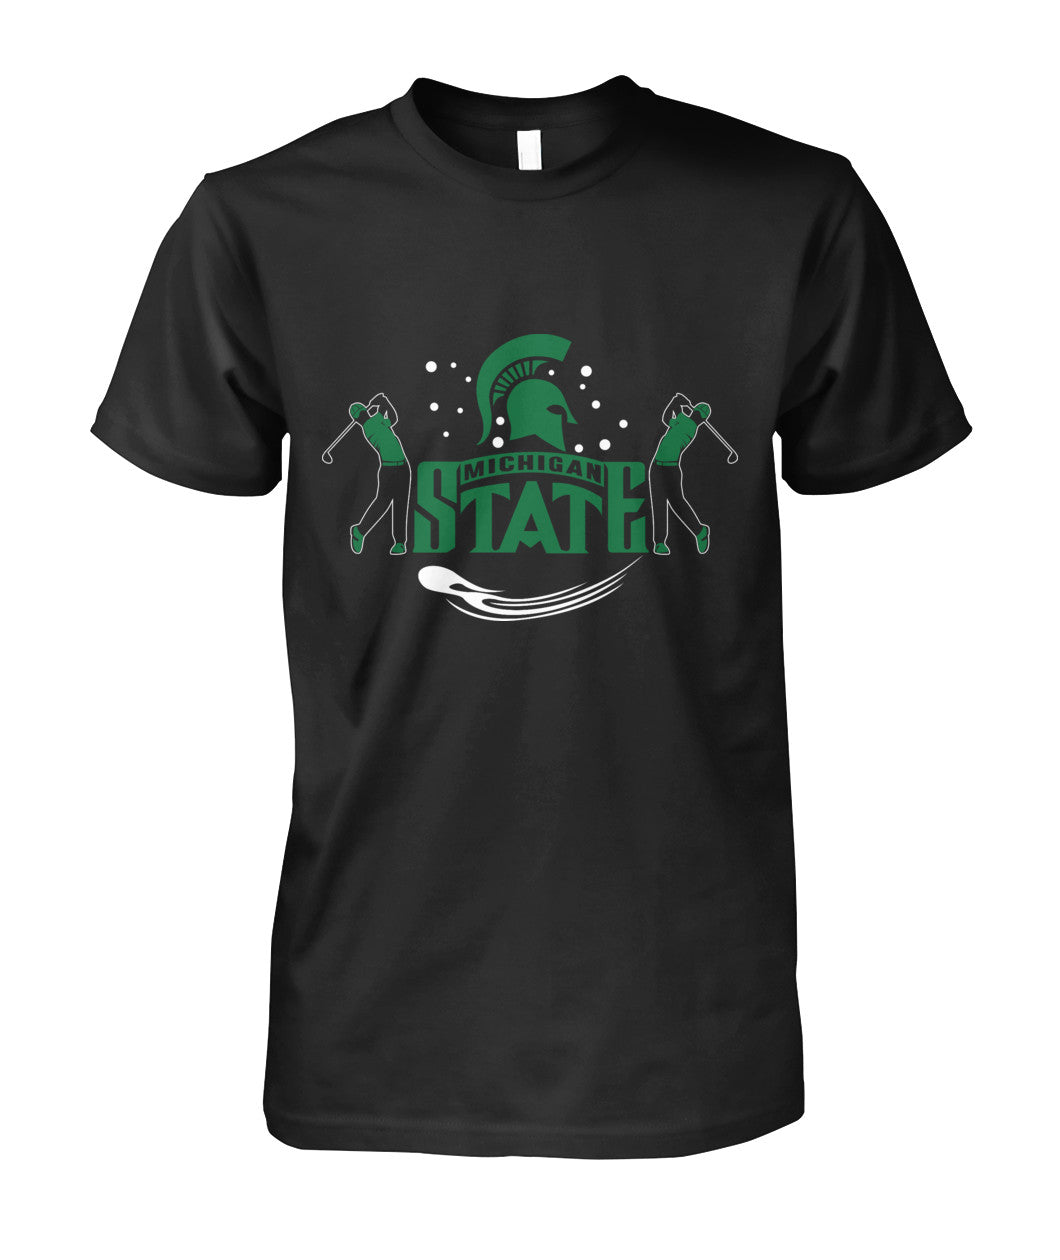 Michigan state funny golf shirt Unisex Cotton Tee